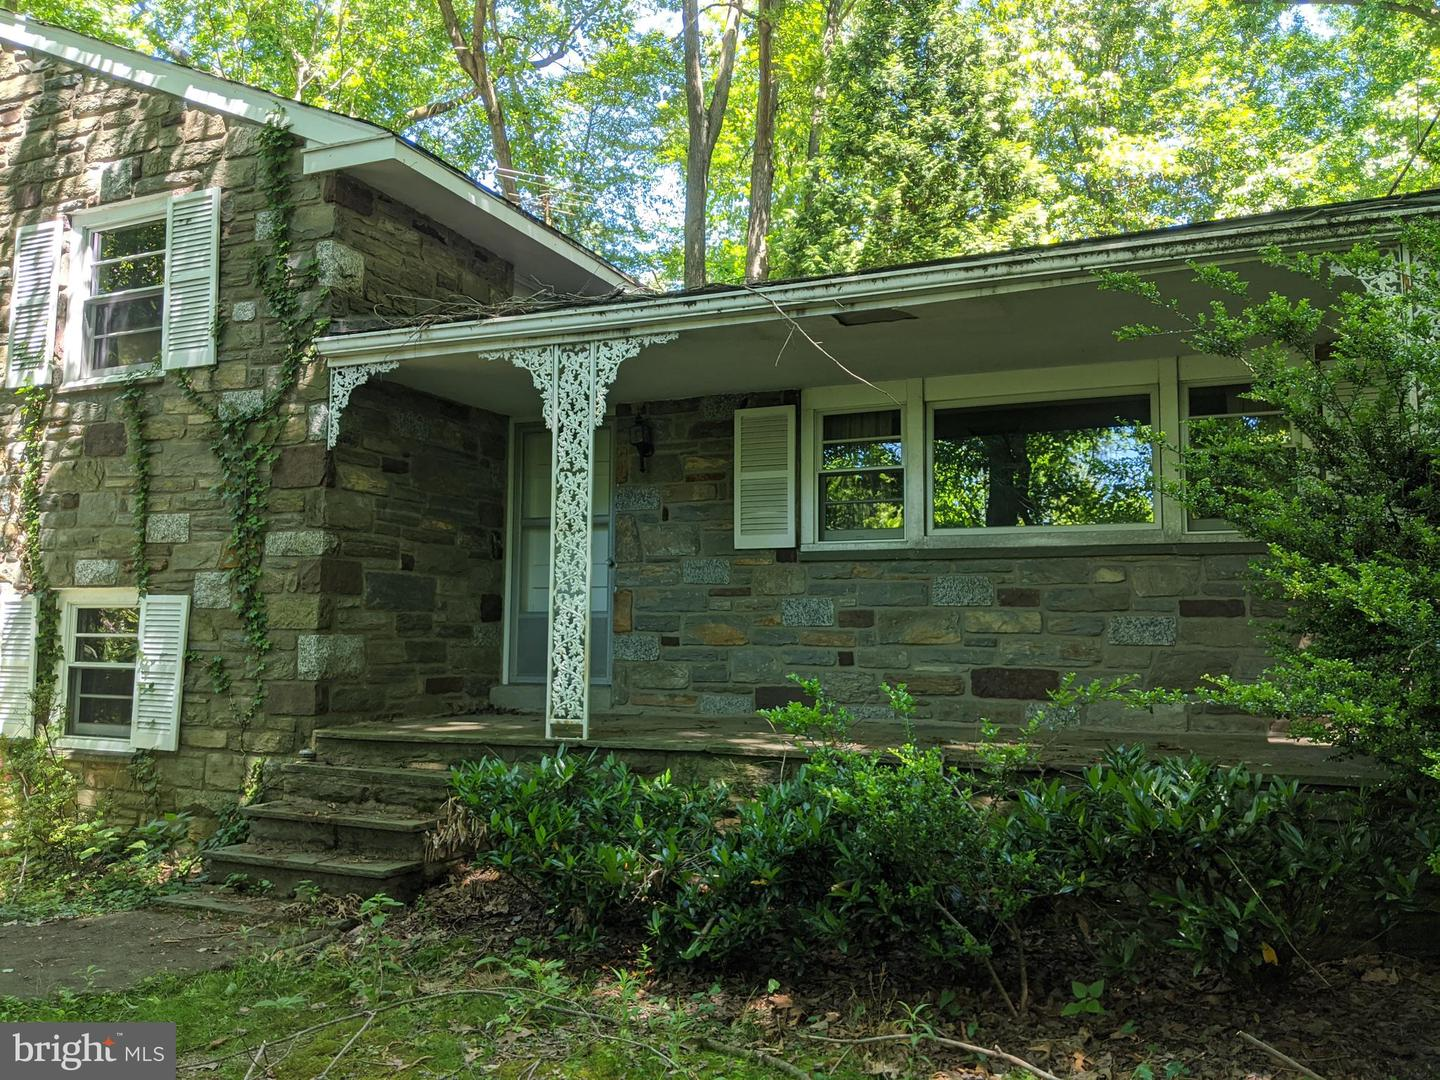 1900 Lawrence Road Havertown, PA 19083